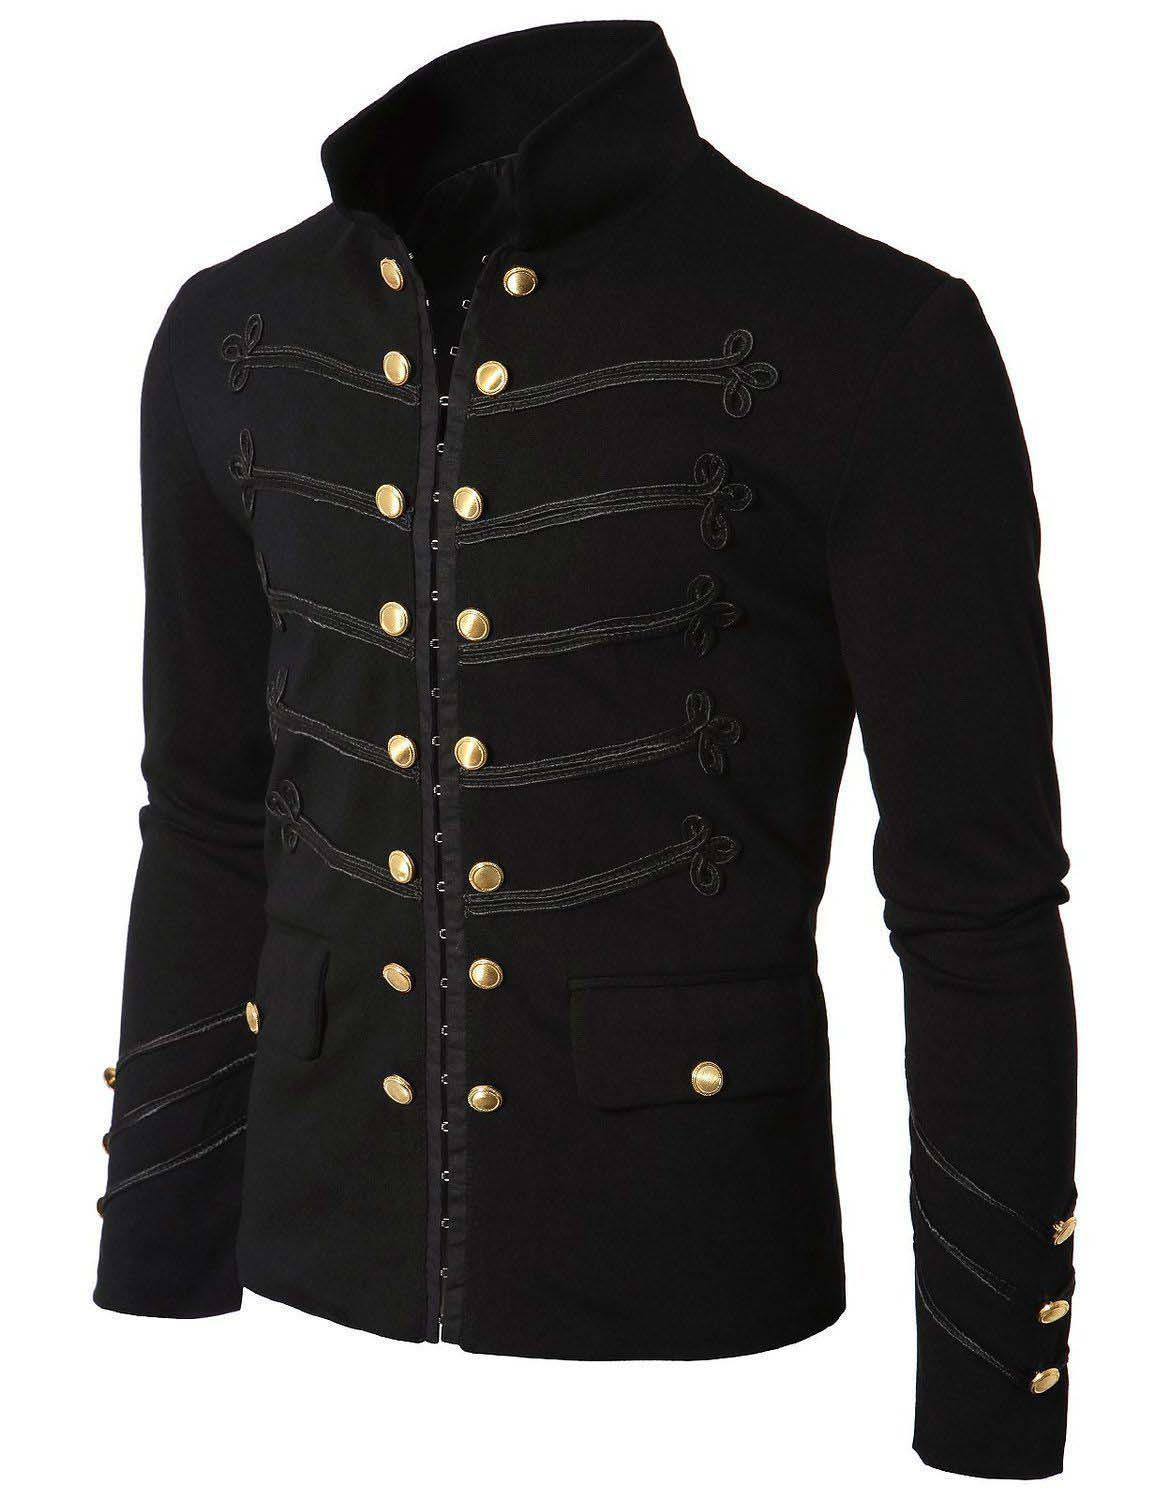 Men Modern Gothic Napoleon Military Hook Jacket Black Goth Lace Trim